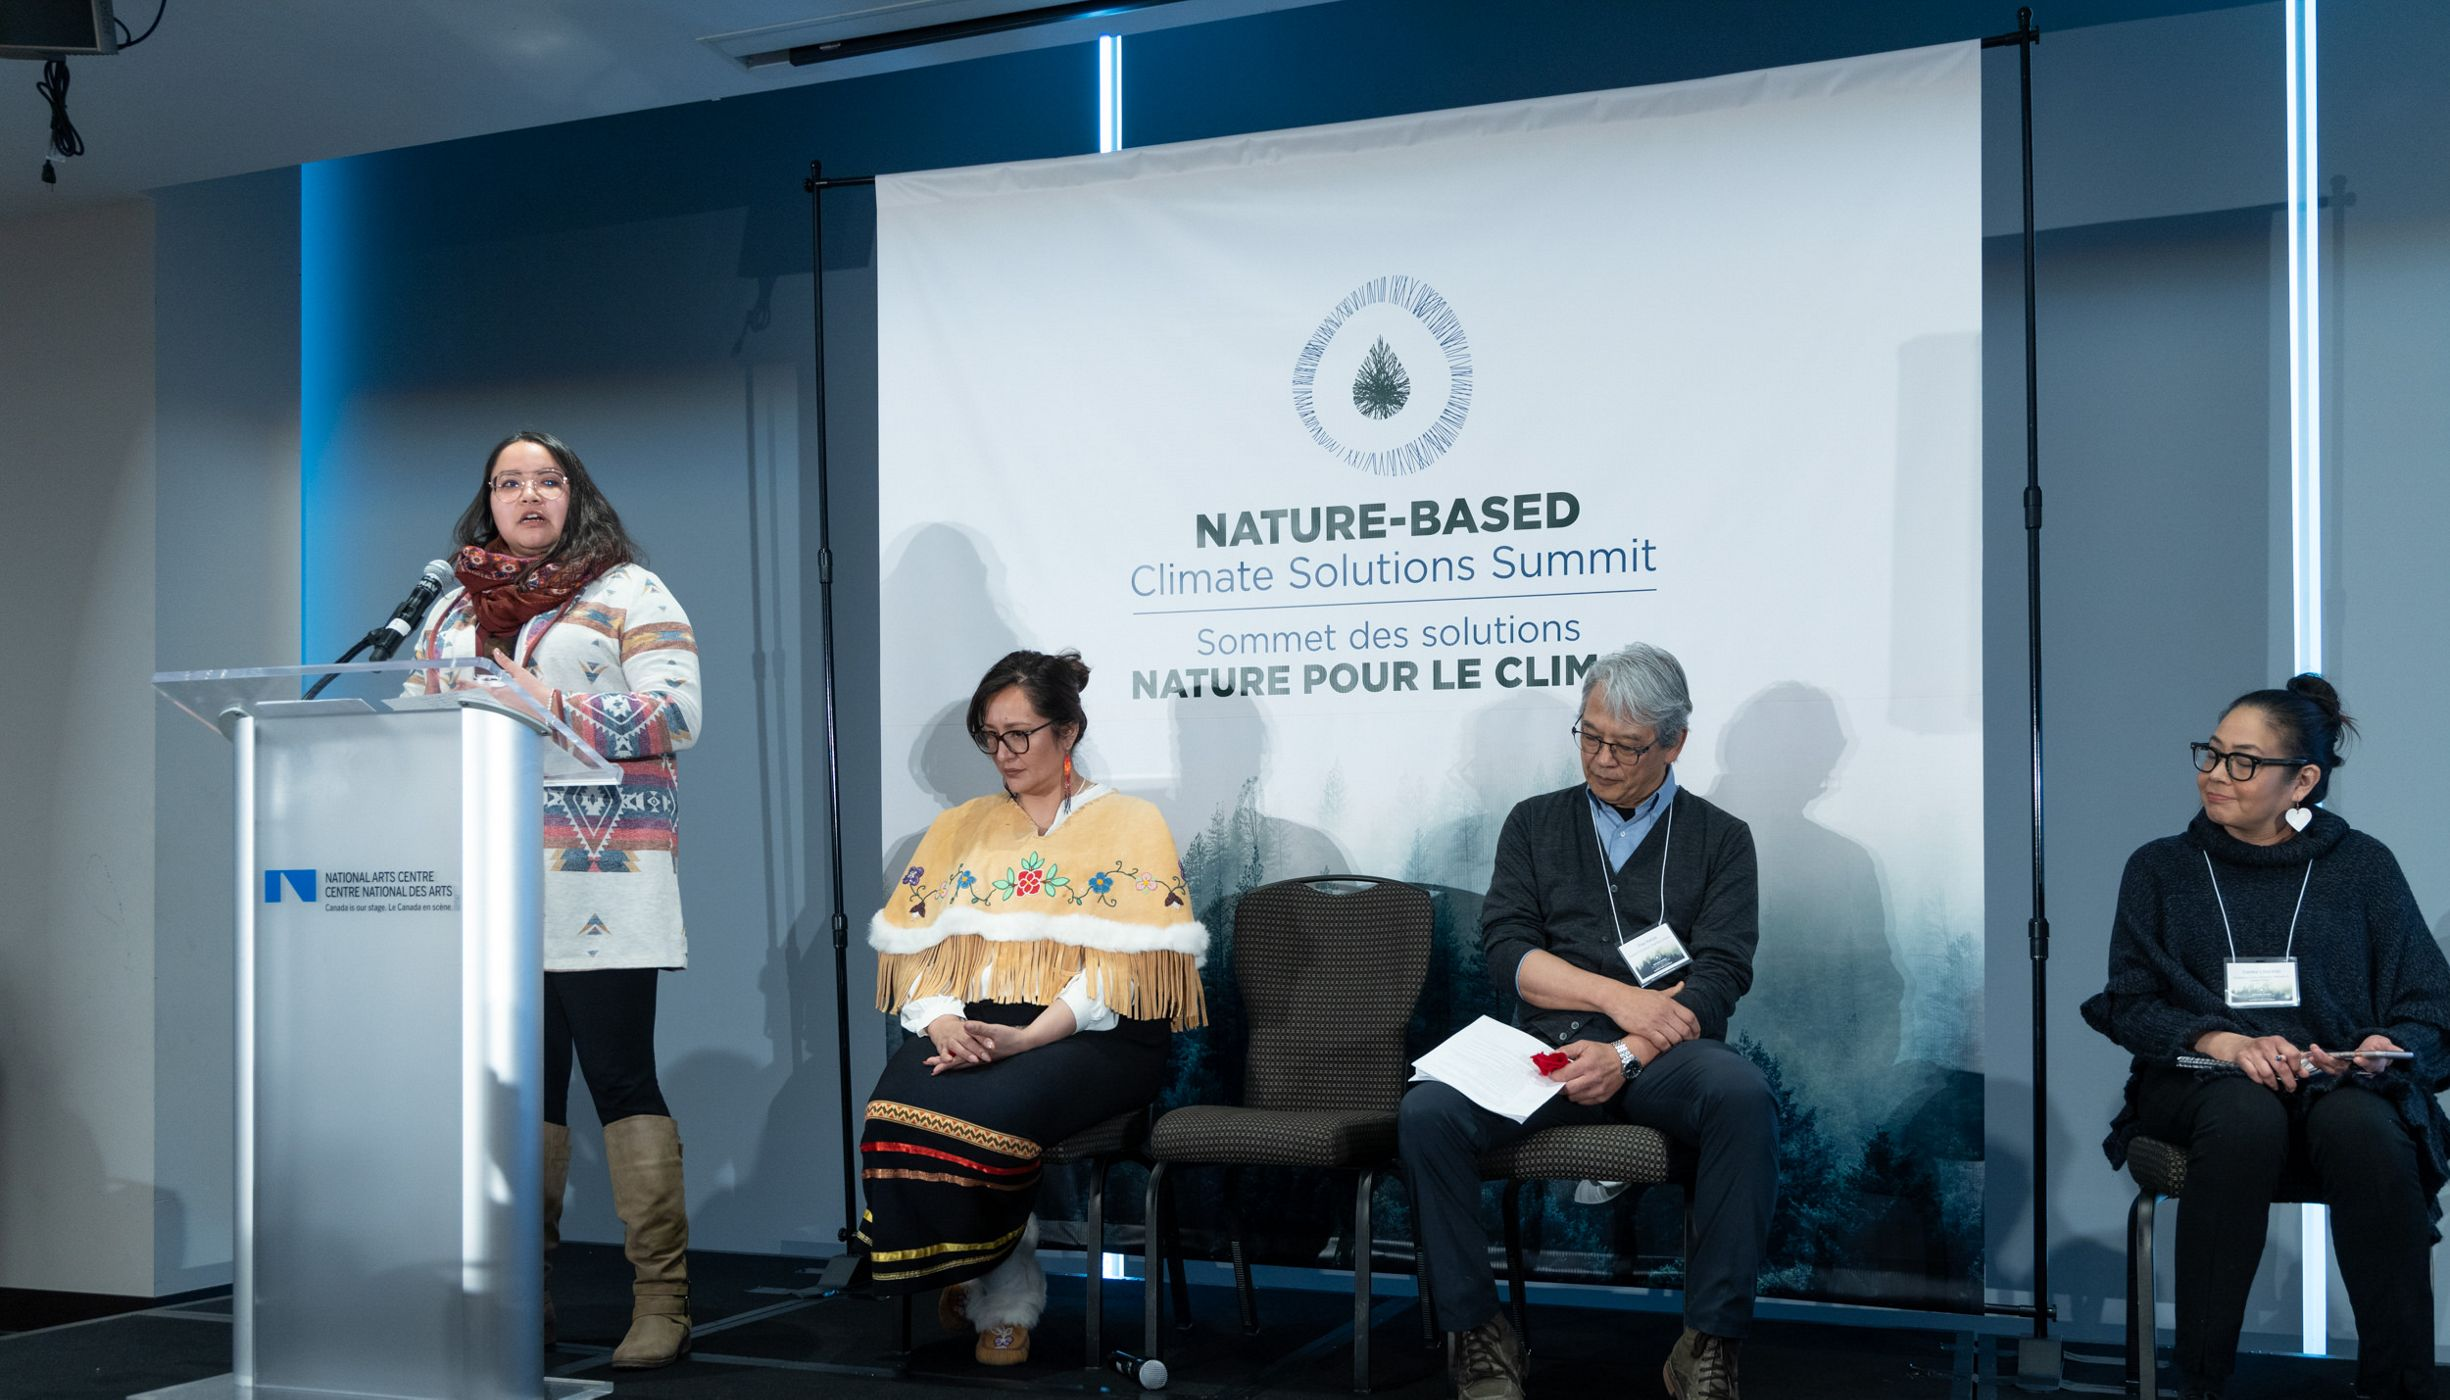 Diandra Bruised Head spoke on a panel about examples of Indigenous-led nature-based climate solutions.